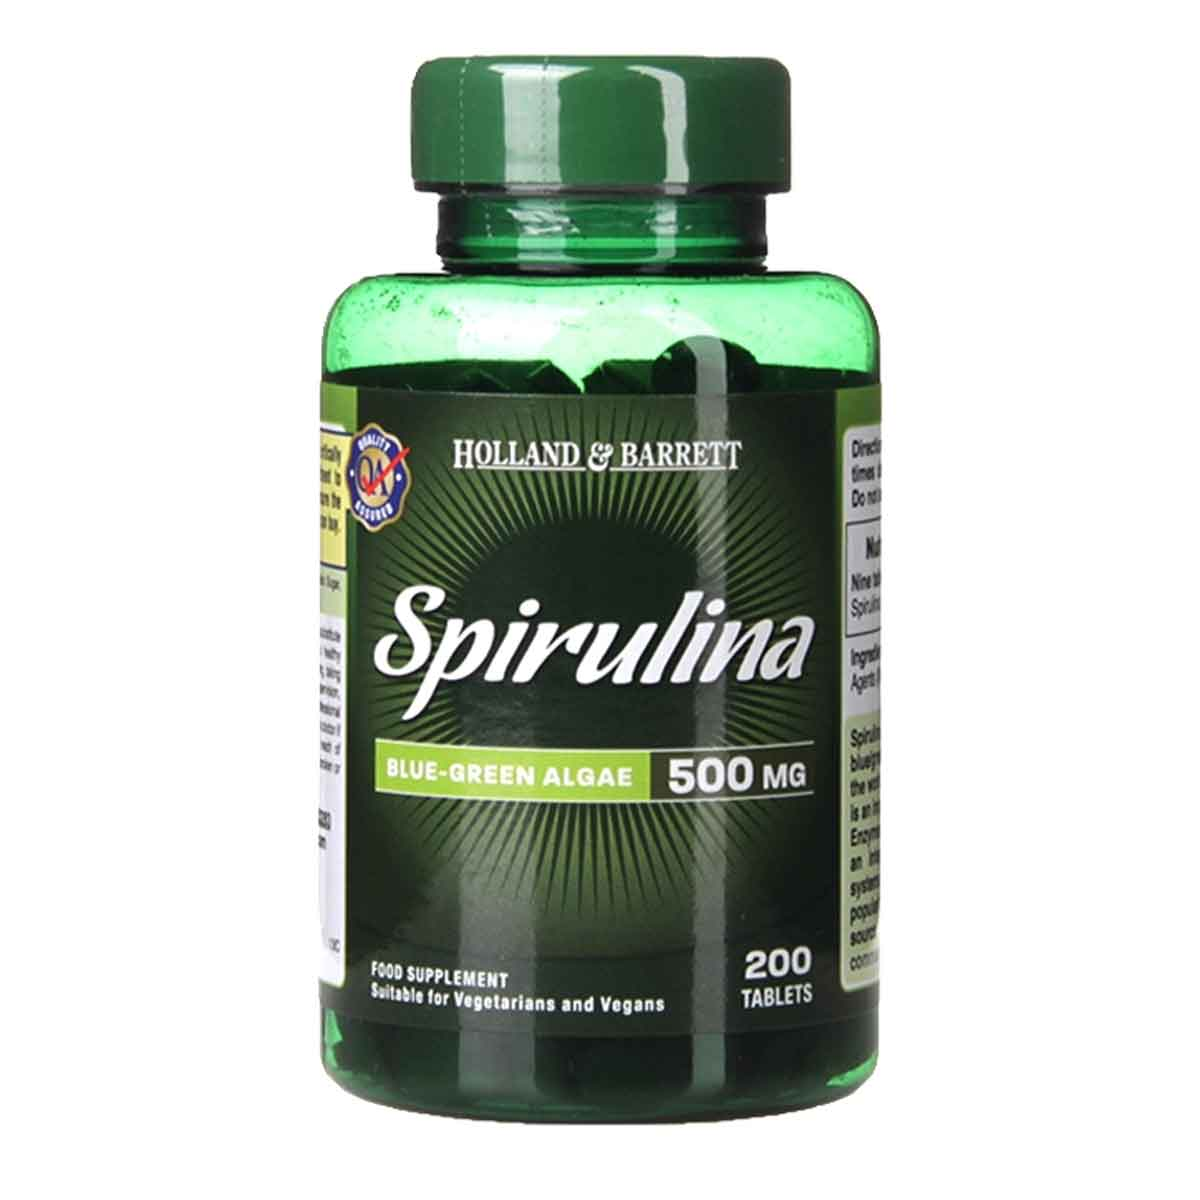 Holland & Barrett Spirulina Tablets